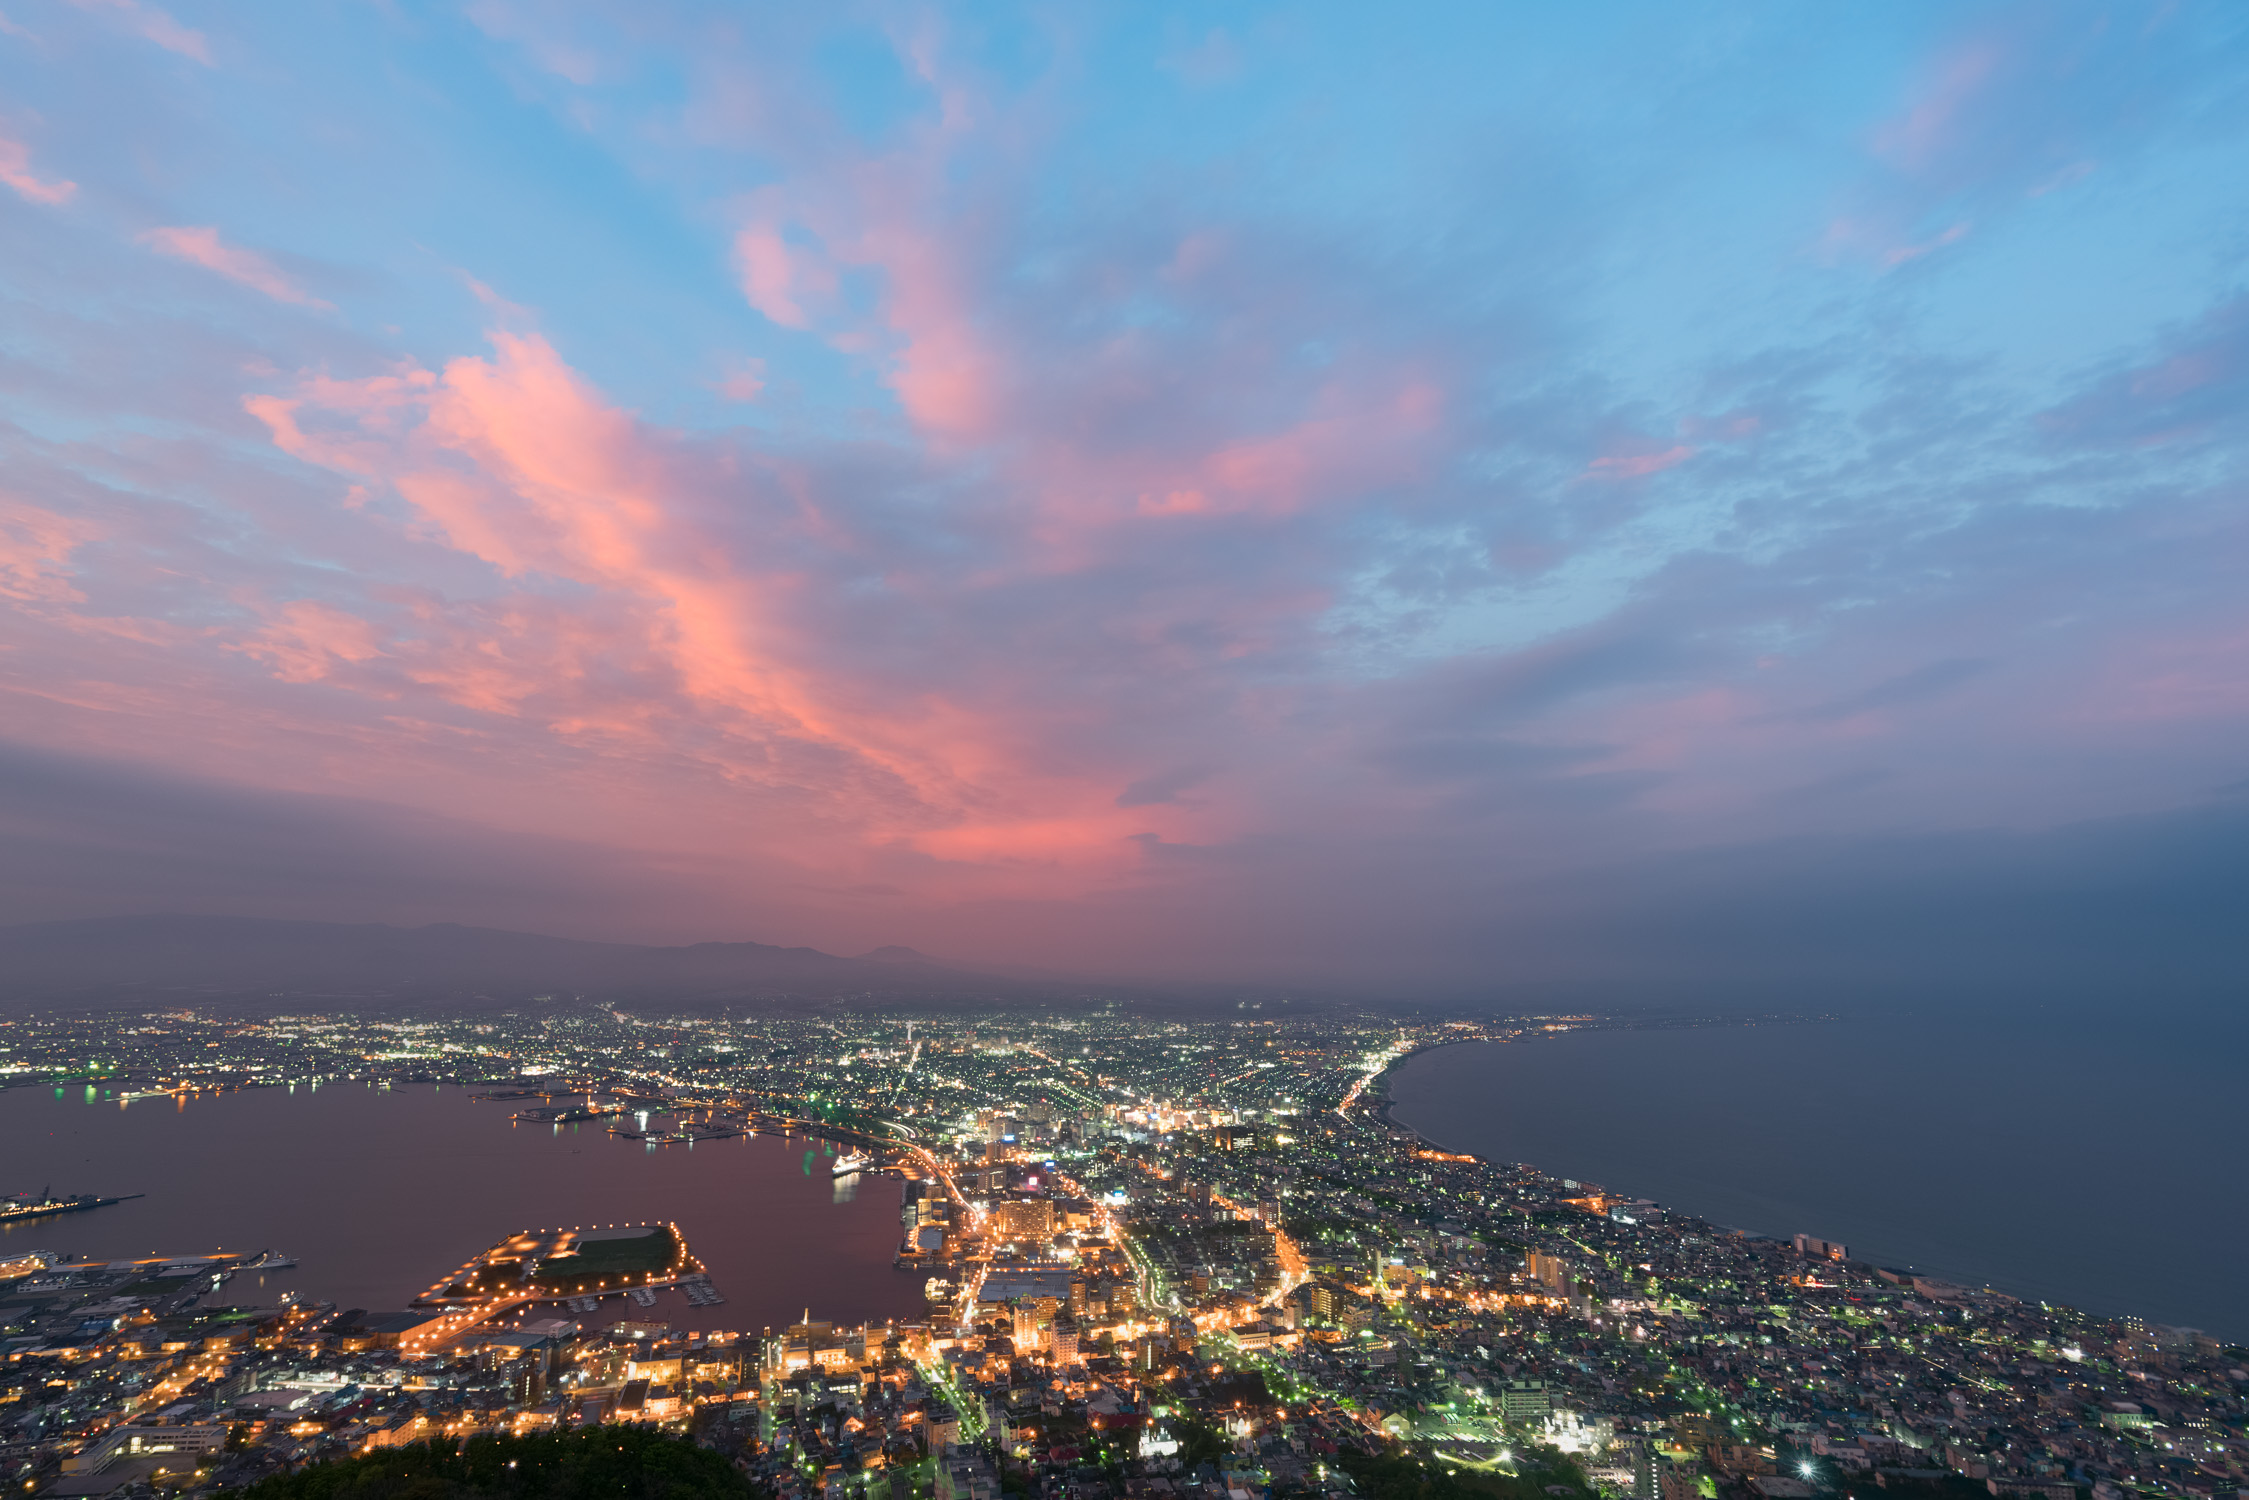 Hakodate during sunset [David Tan]